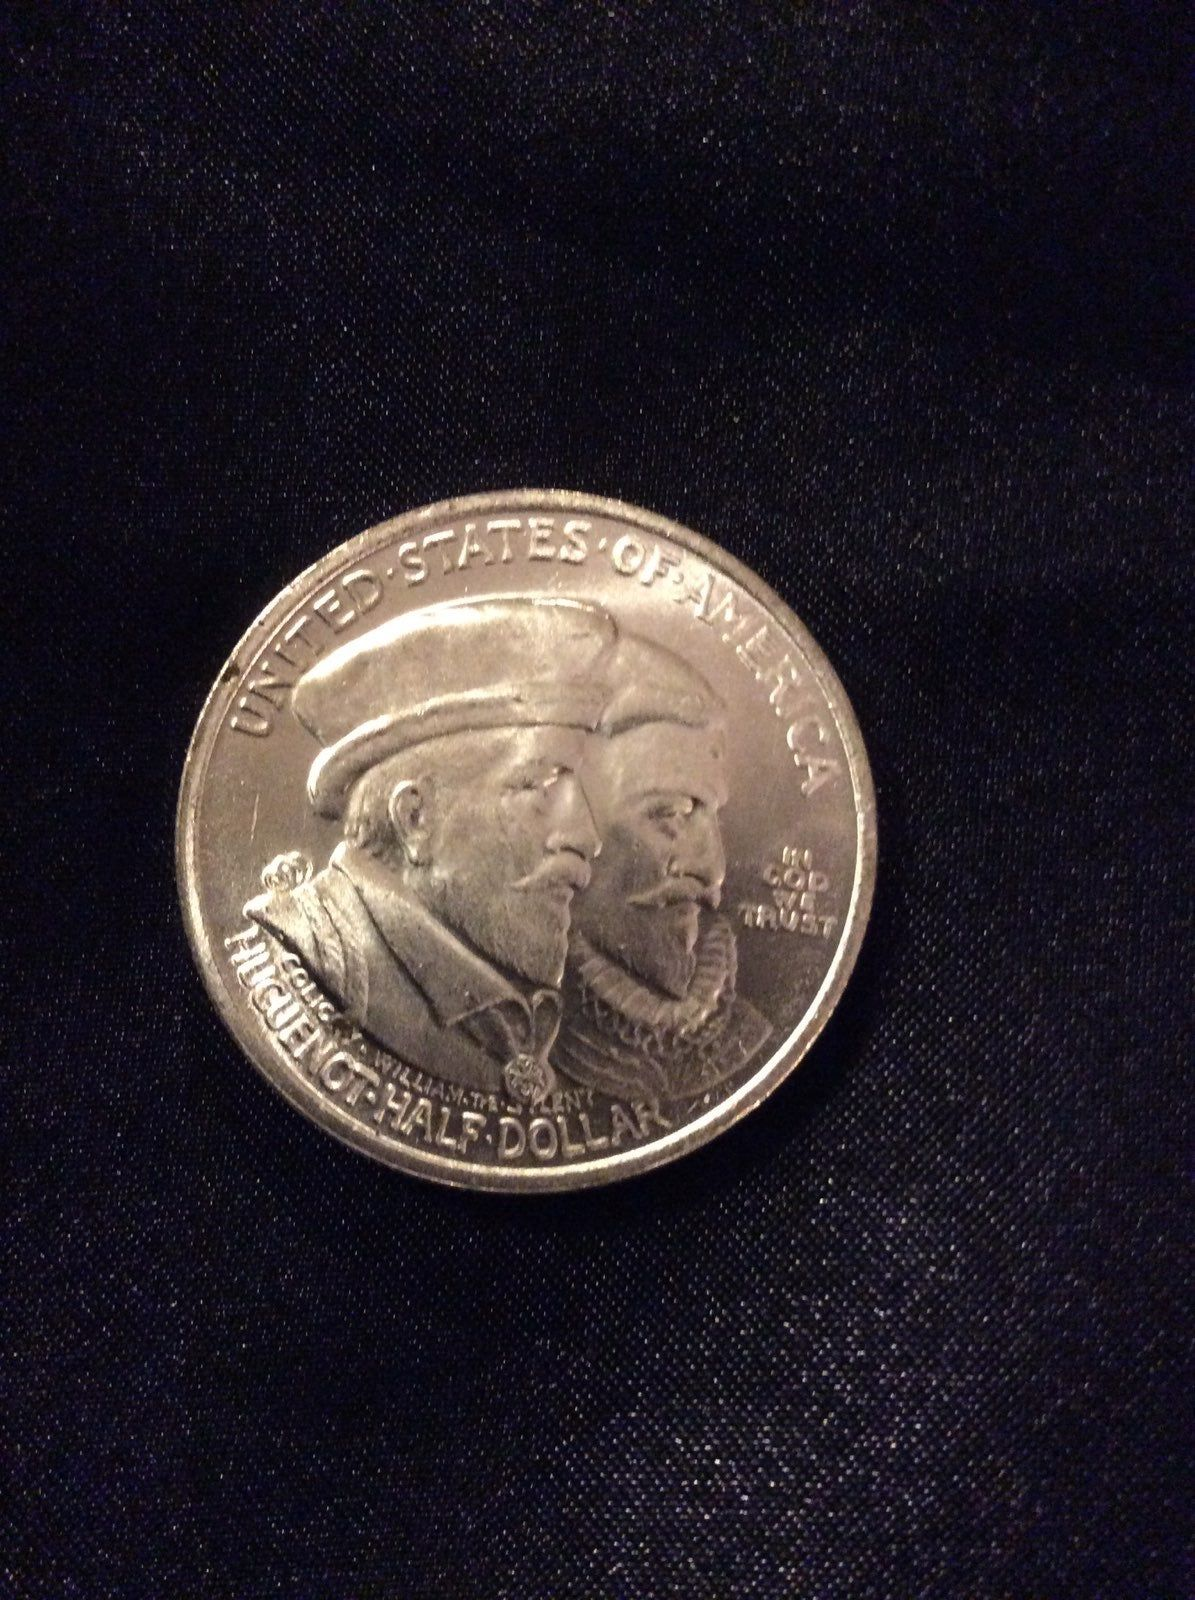 1924 tribute silver coin celebrate the founding of New